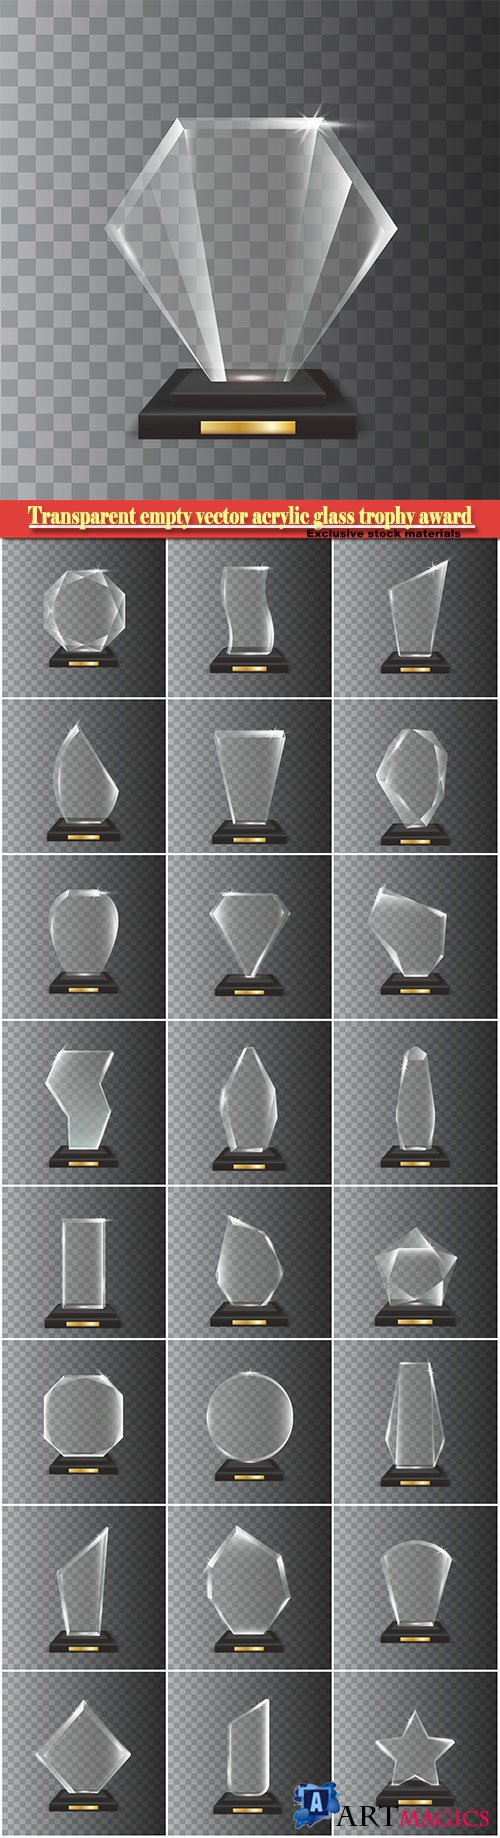 Transparent realistic empty vector acrylic glass trophy award